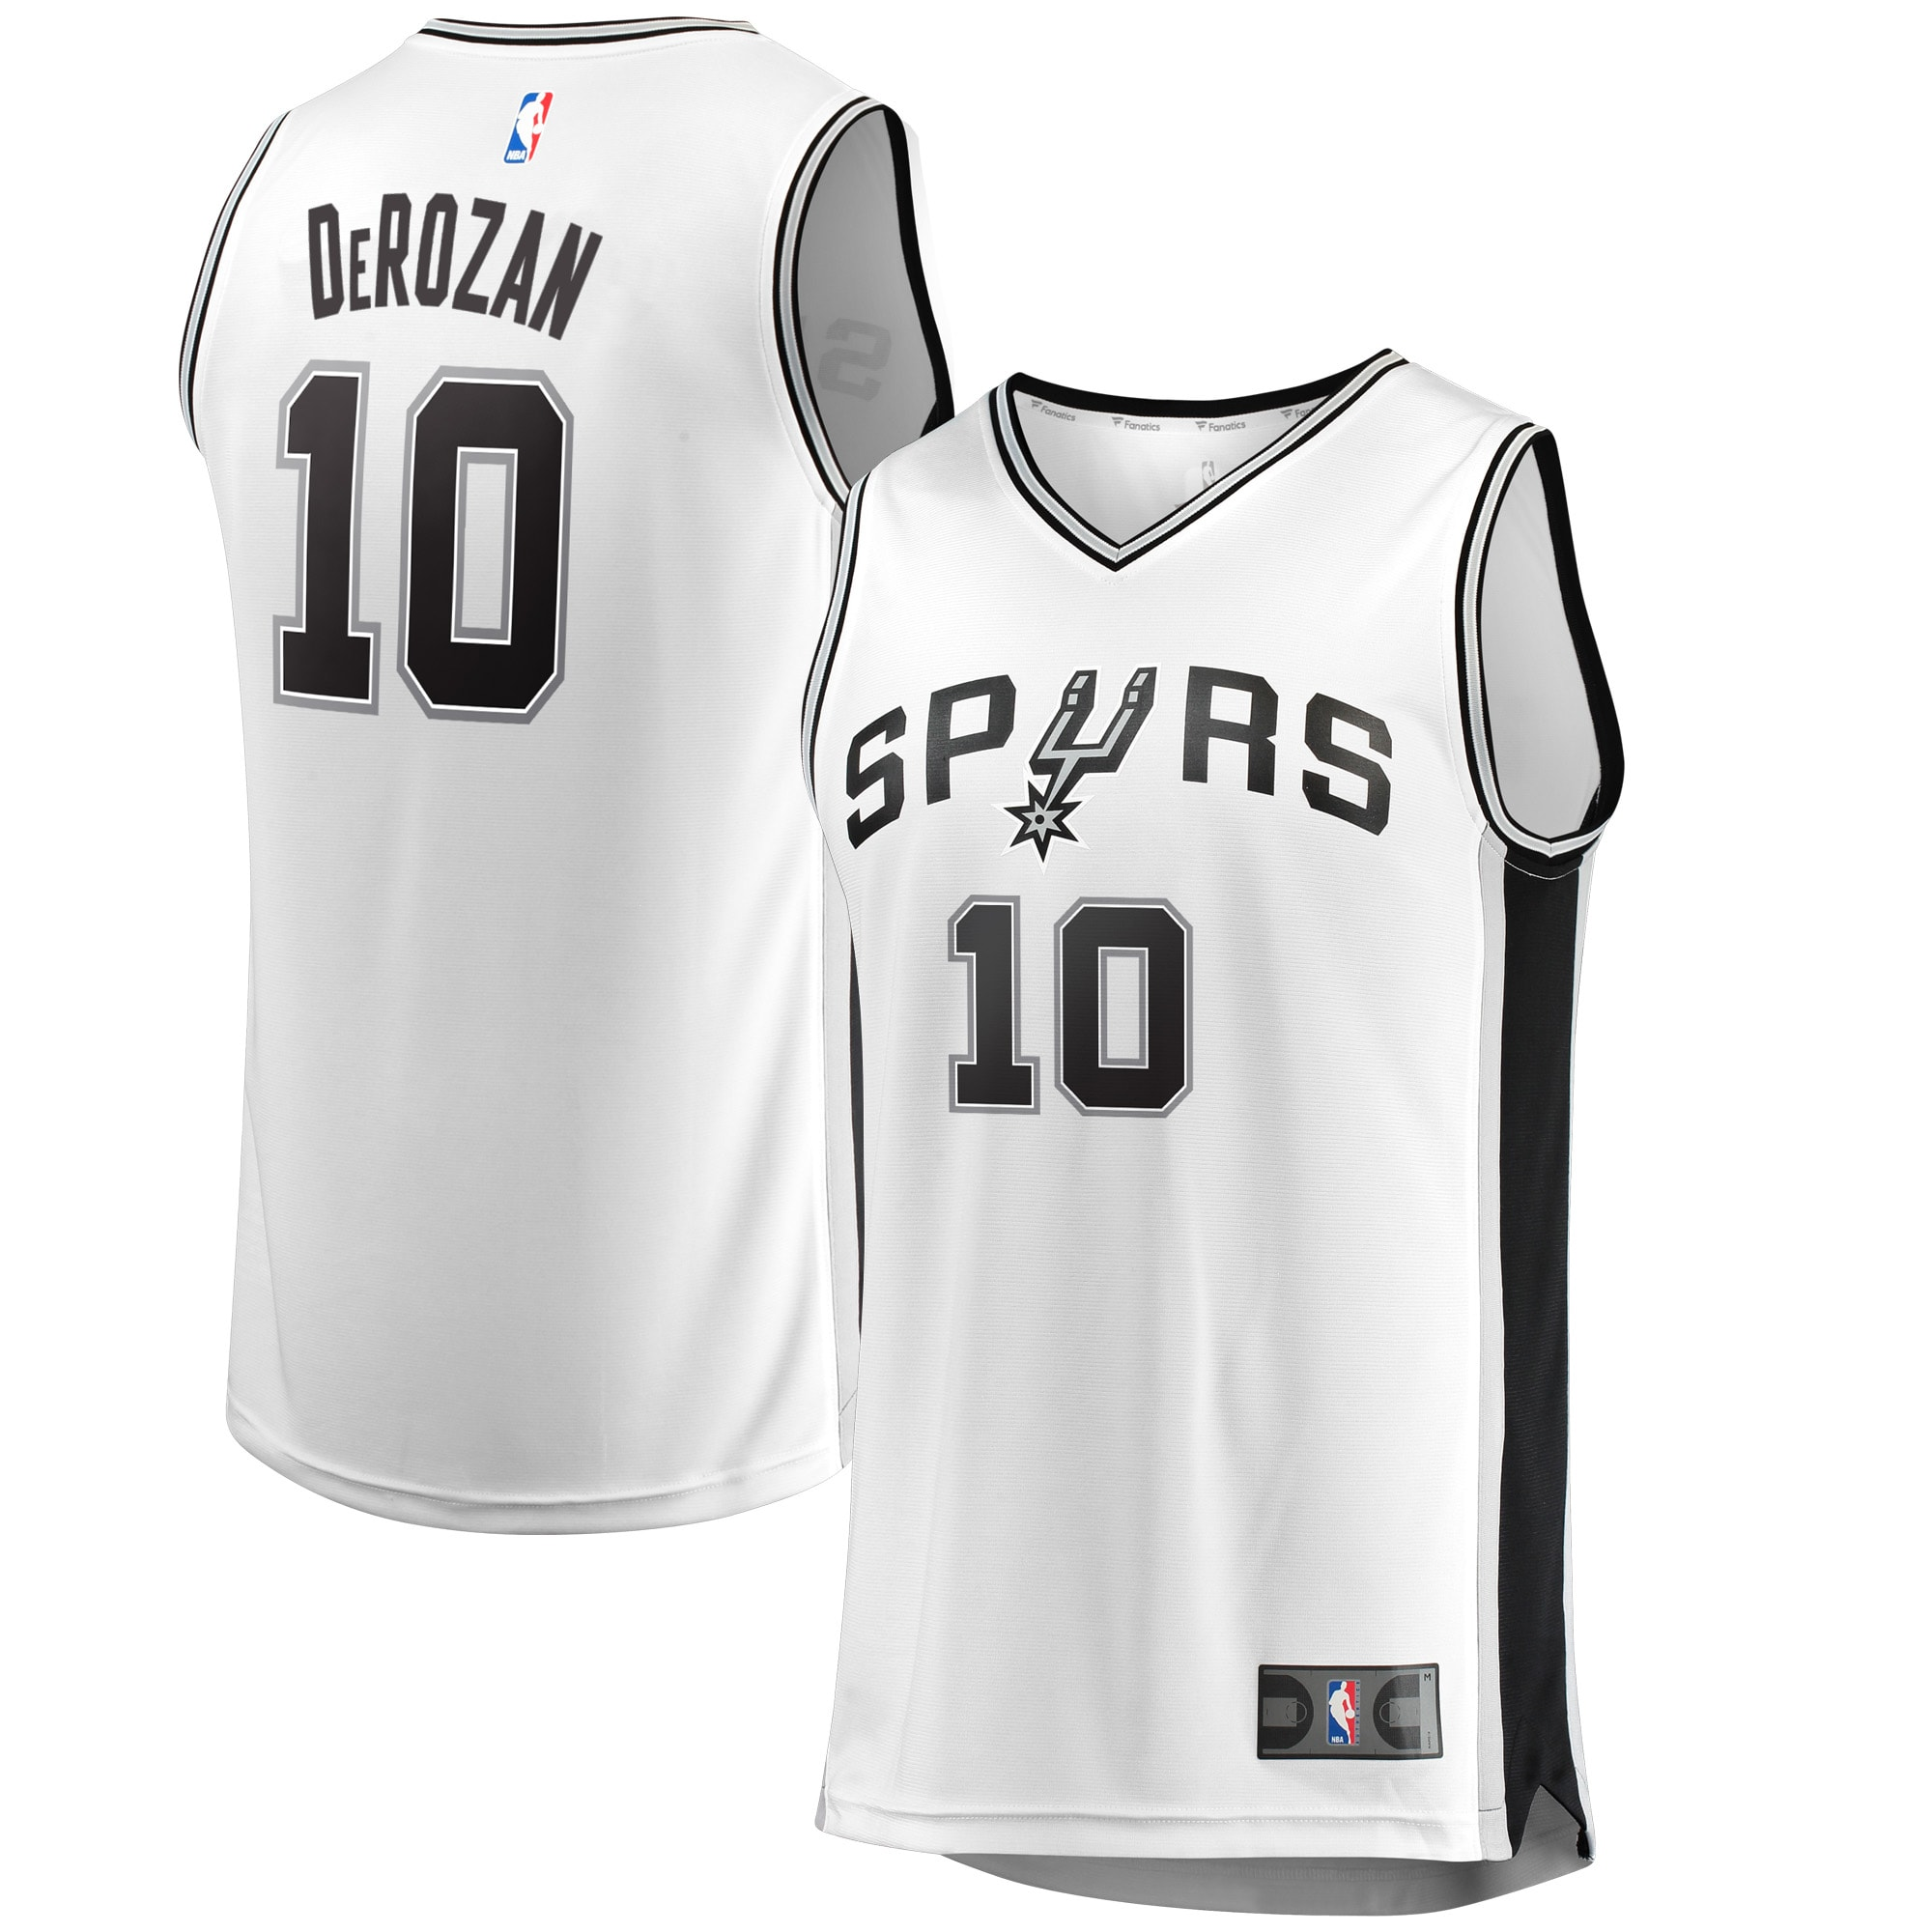 DeMar DeRozan San Antonio Spurs Fanatics Branded Fast Break White Jersey - Association Edition - White